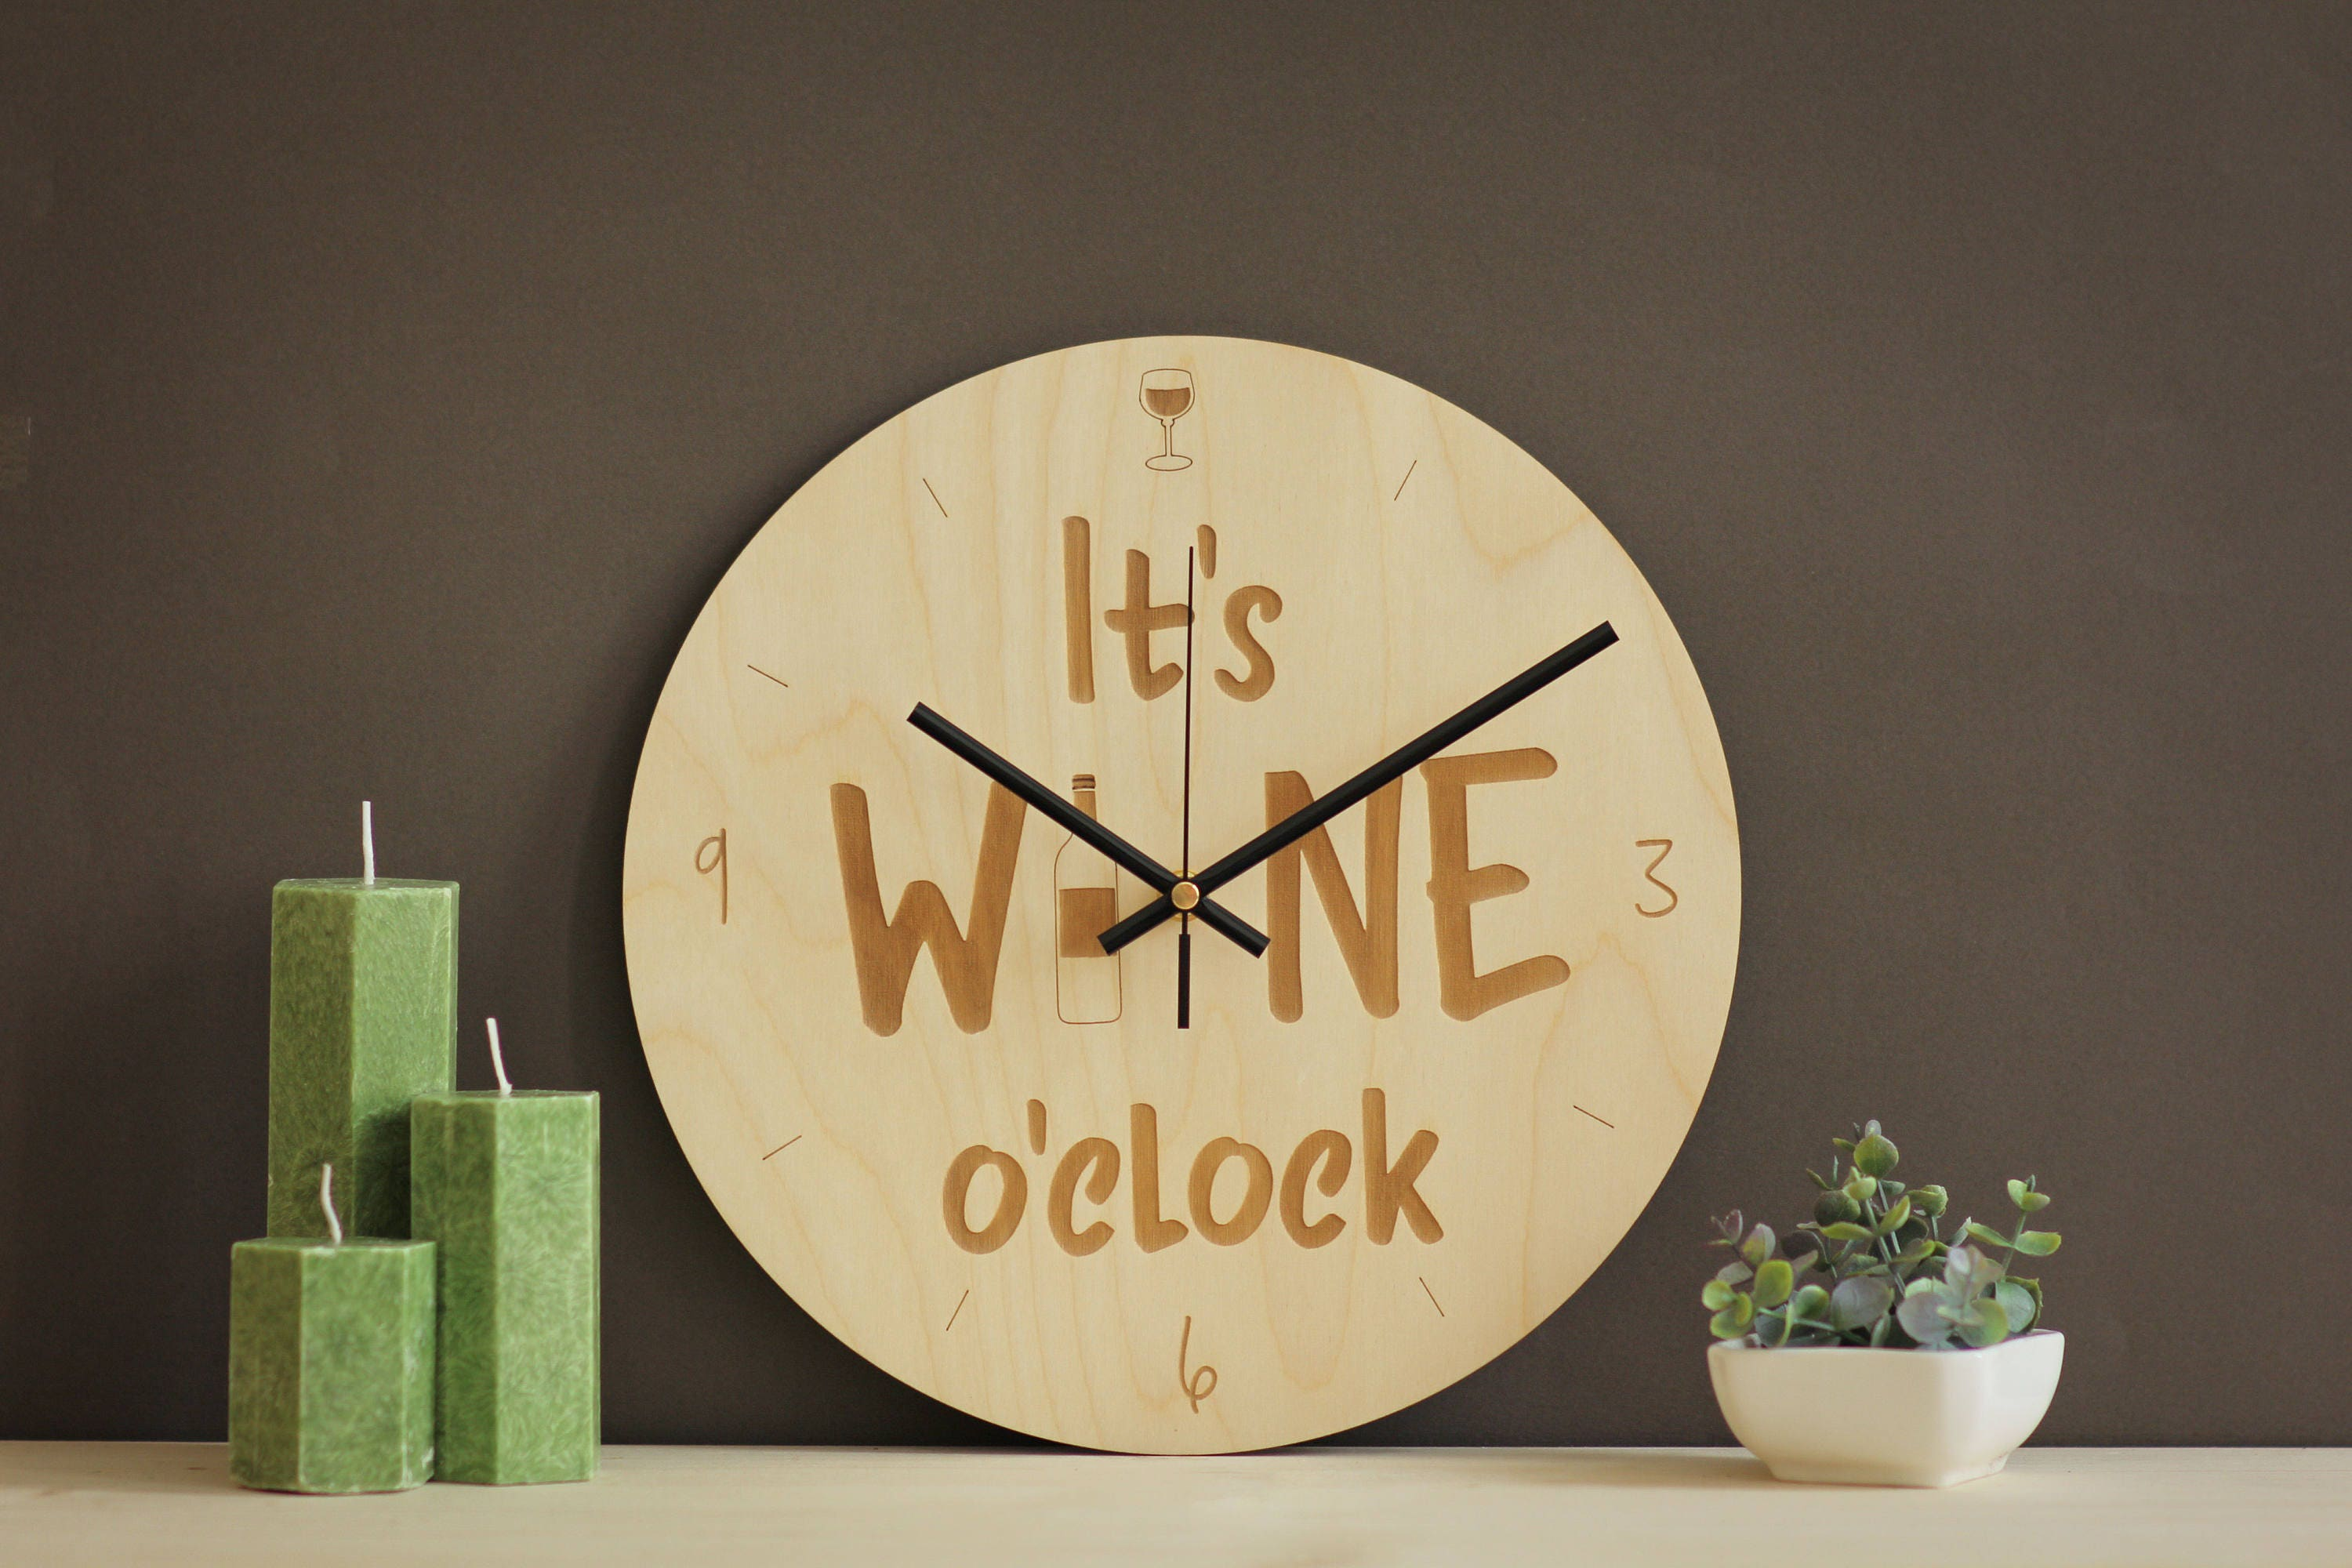 Magnificent Wall Art Clock Image Collection - Art & Wall Decor ...